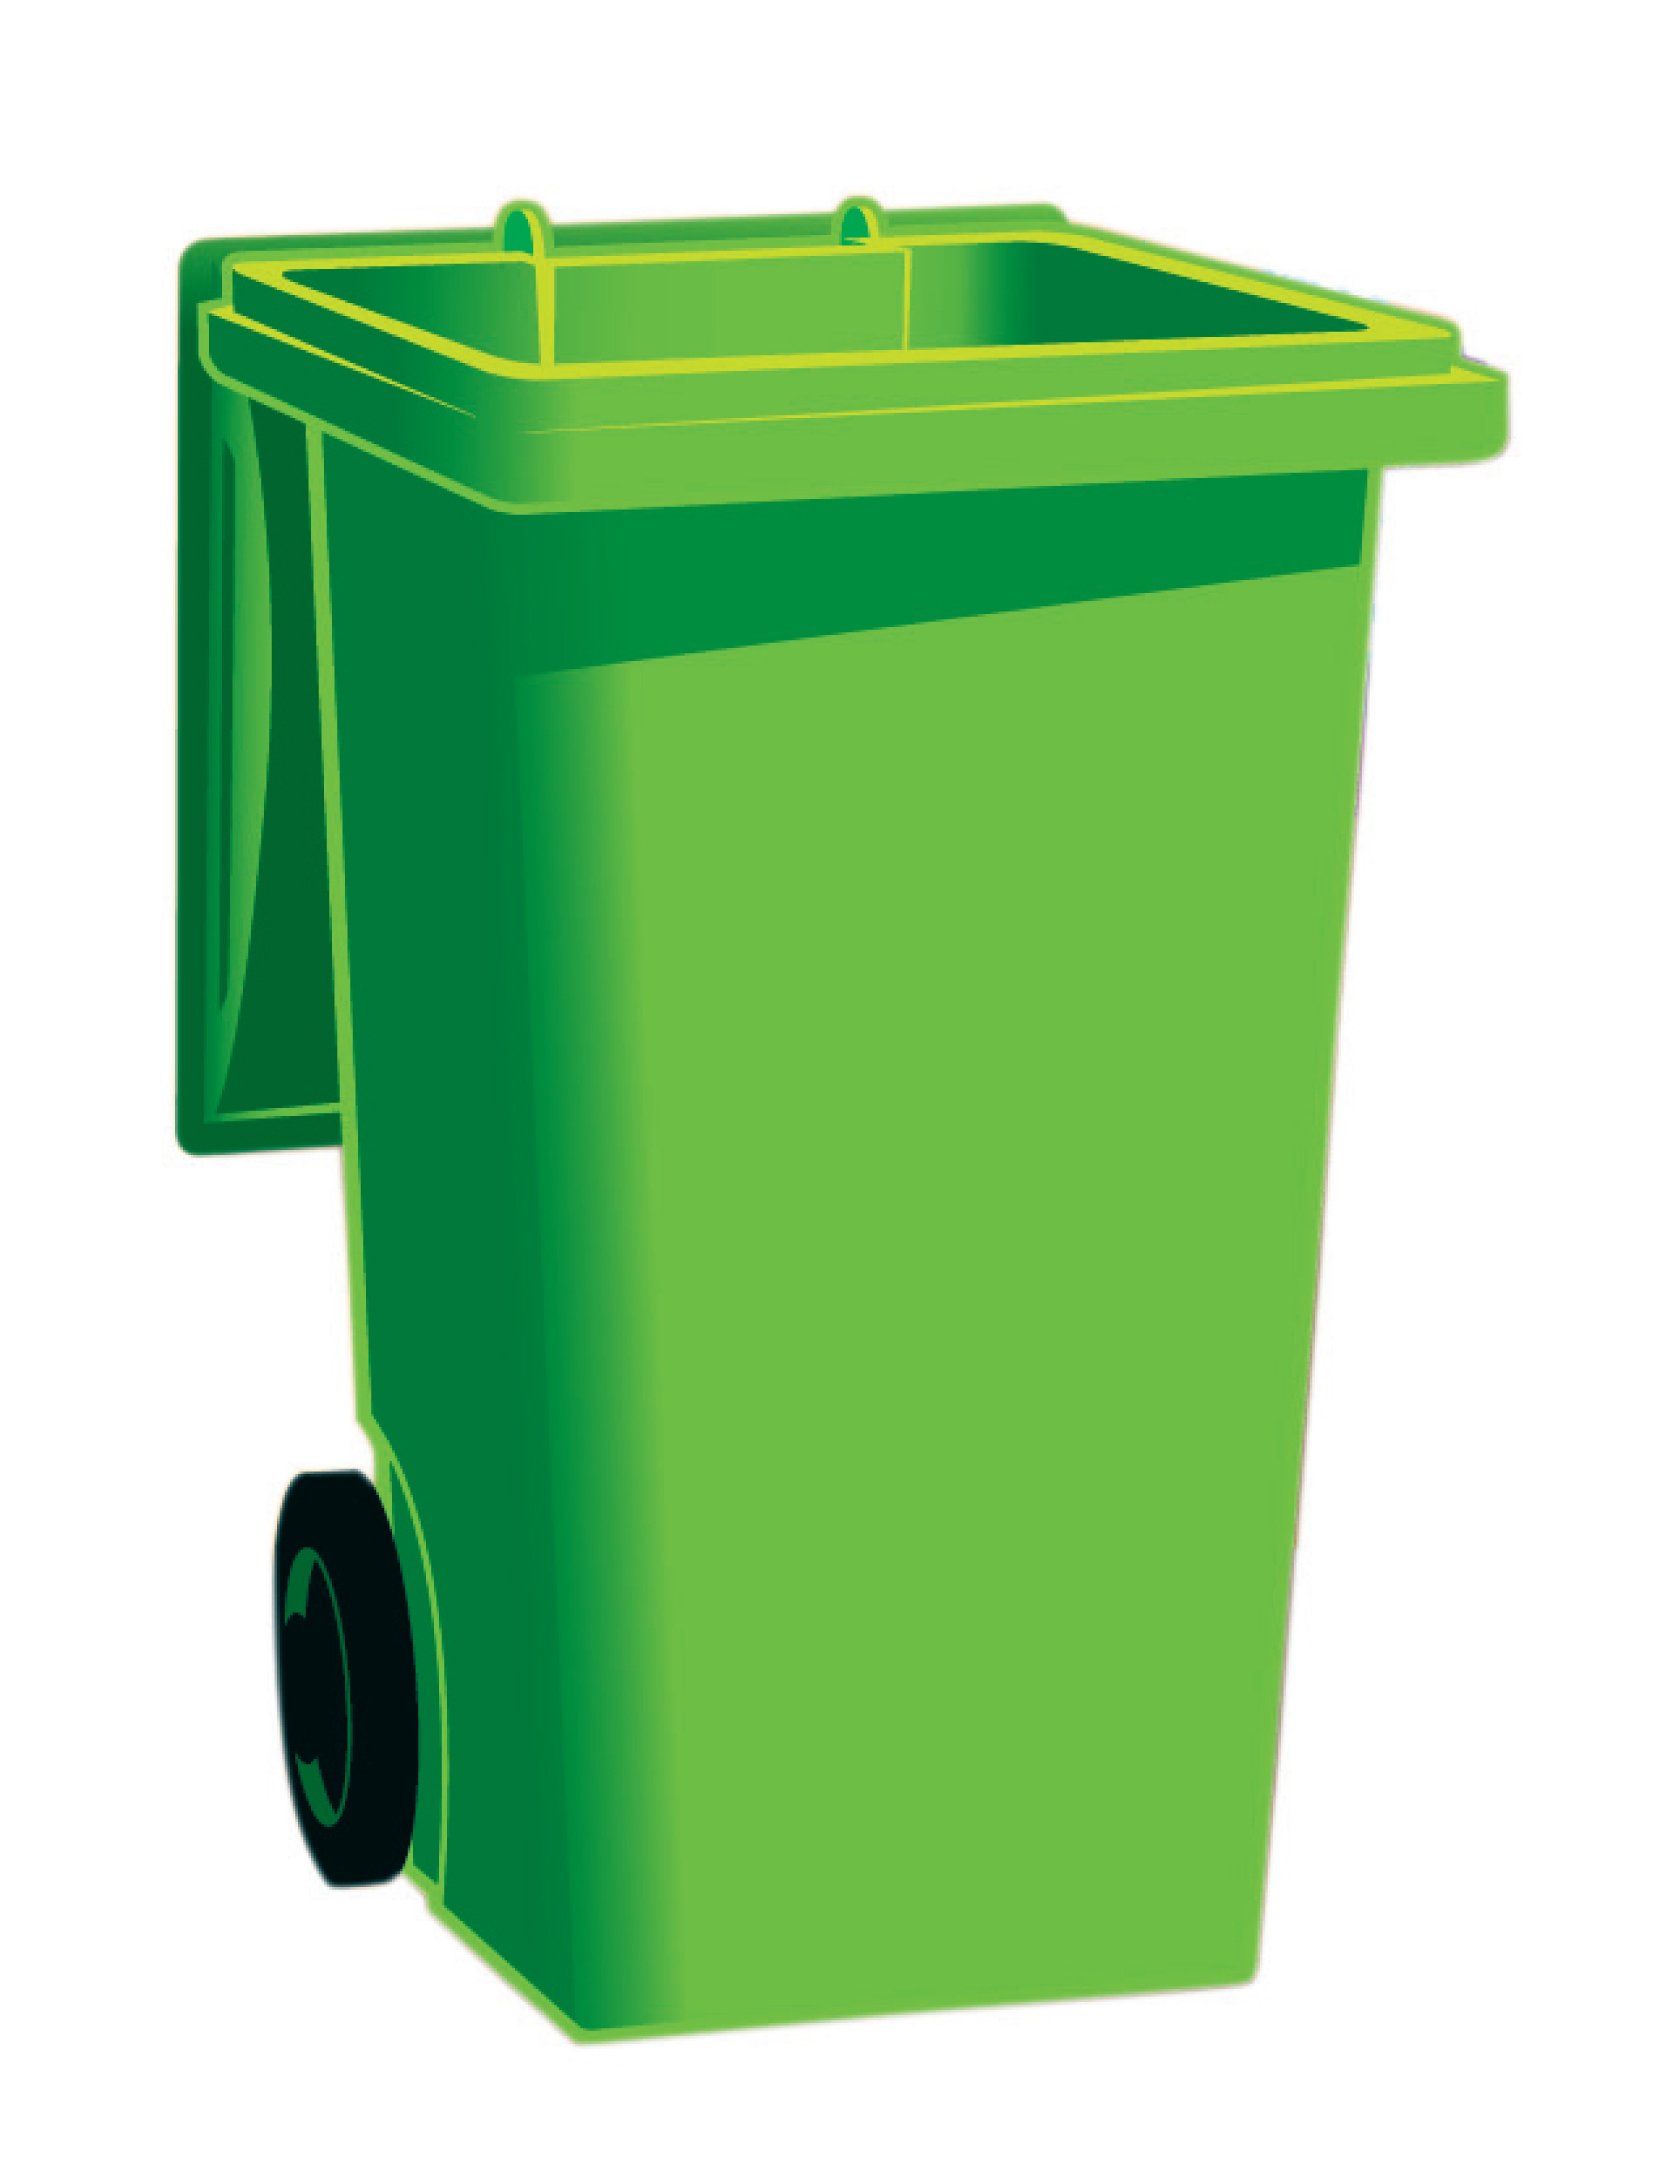 Green dumpster clipart transparent download Green garbage can clipart - Clip Art Library transparent download